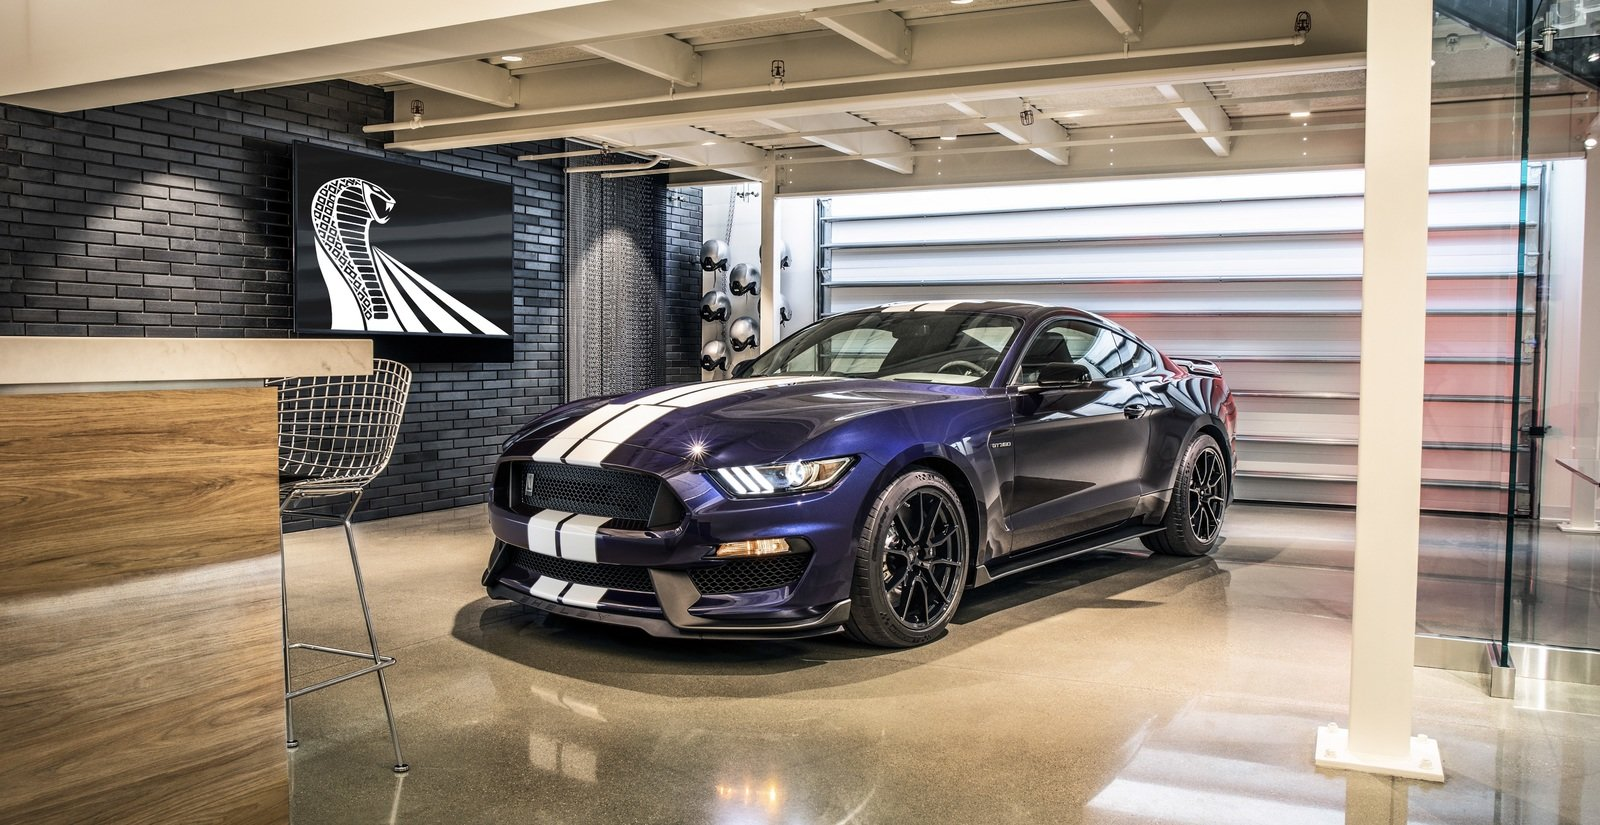 2019 Ford Mustang Shelby GT350 | Top Speed